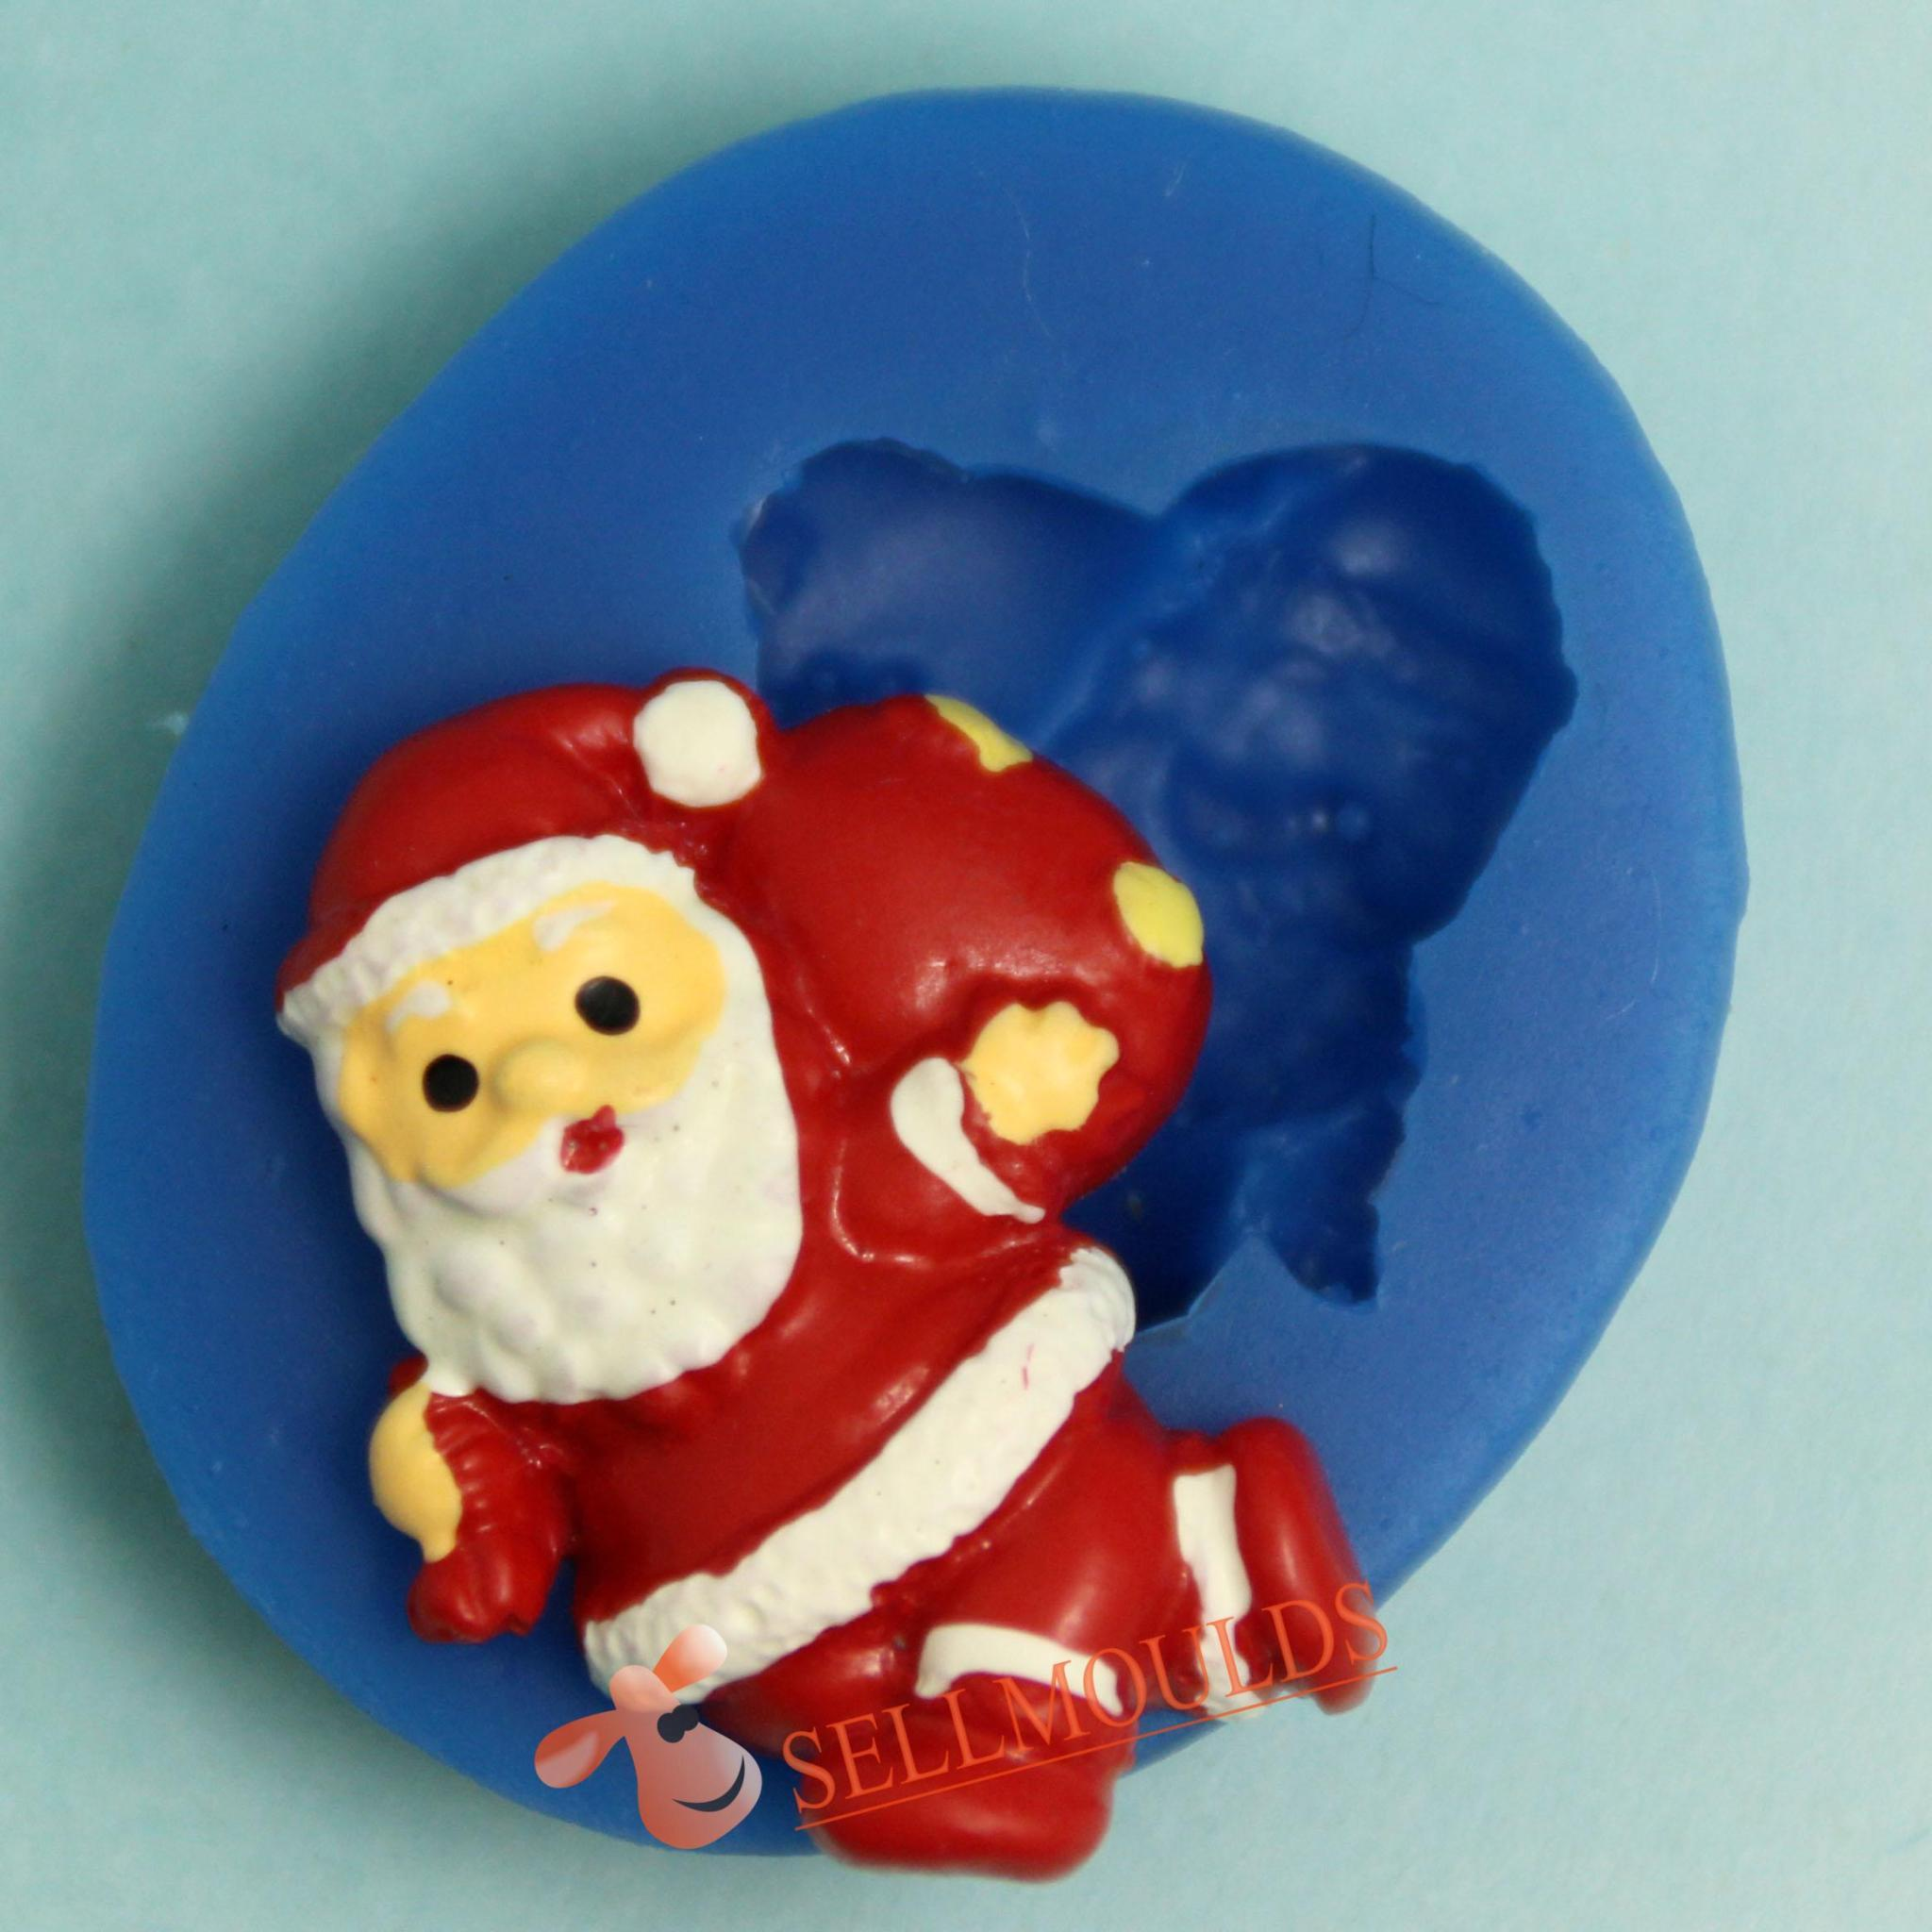 Santa Claus Christmas Silicone Mold 3D silicone Molds Cakes Chocolate Fondant BKSILICONE - Do It Yourself Store store